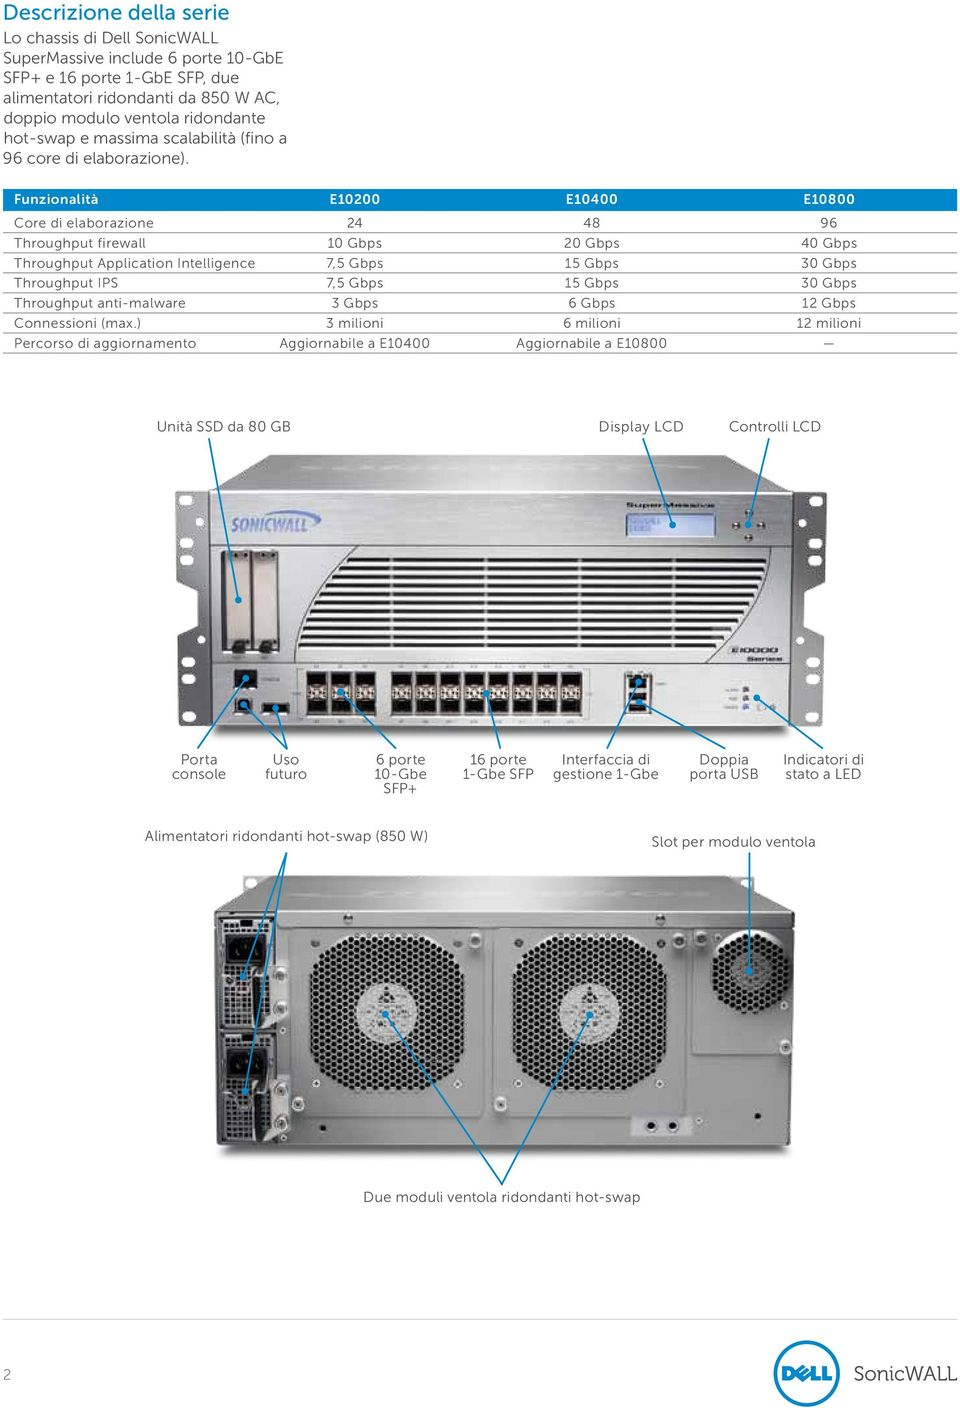 Funzionalità E10200 E10400 E10800 Core di elaborazione 24 48 96 Throughput firewall 10 Gbps 20 Gbps 40 Gbps Throughput Application Intelligence 7,5 Gbps 15 Gbps 30 Gbps Throughput IPS 7,5 Gbps 15